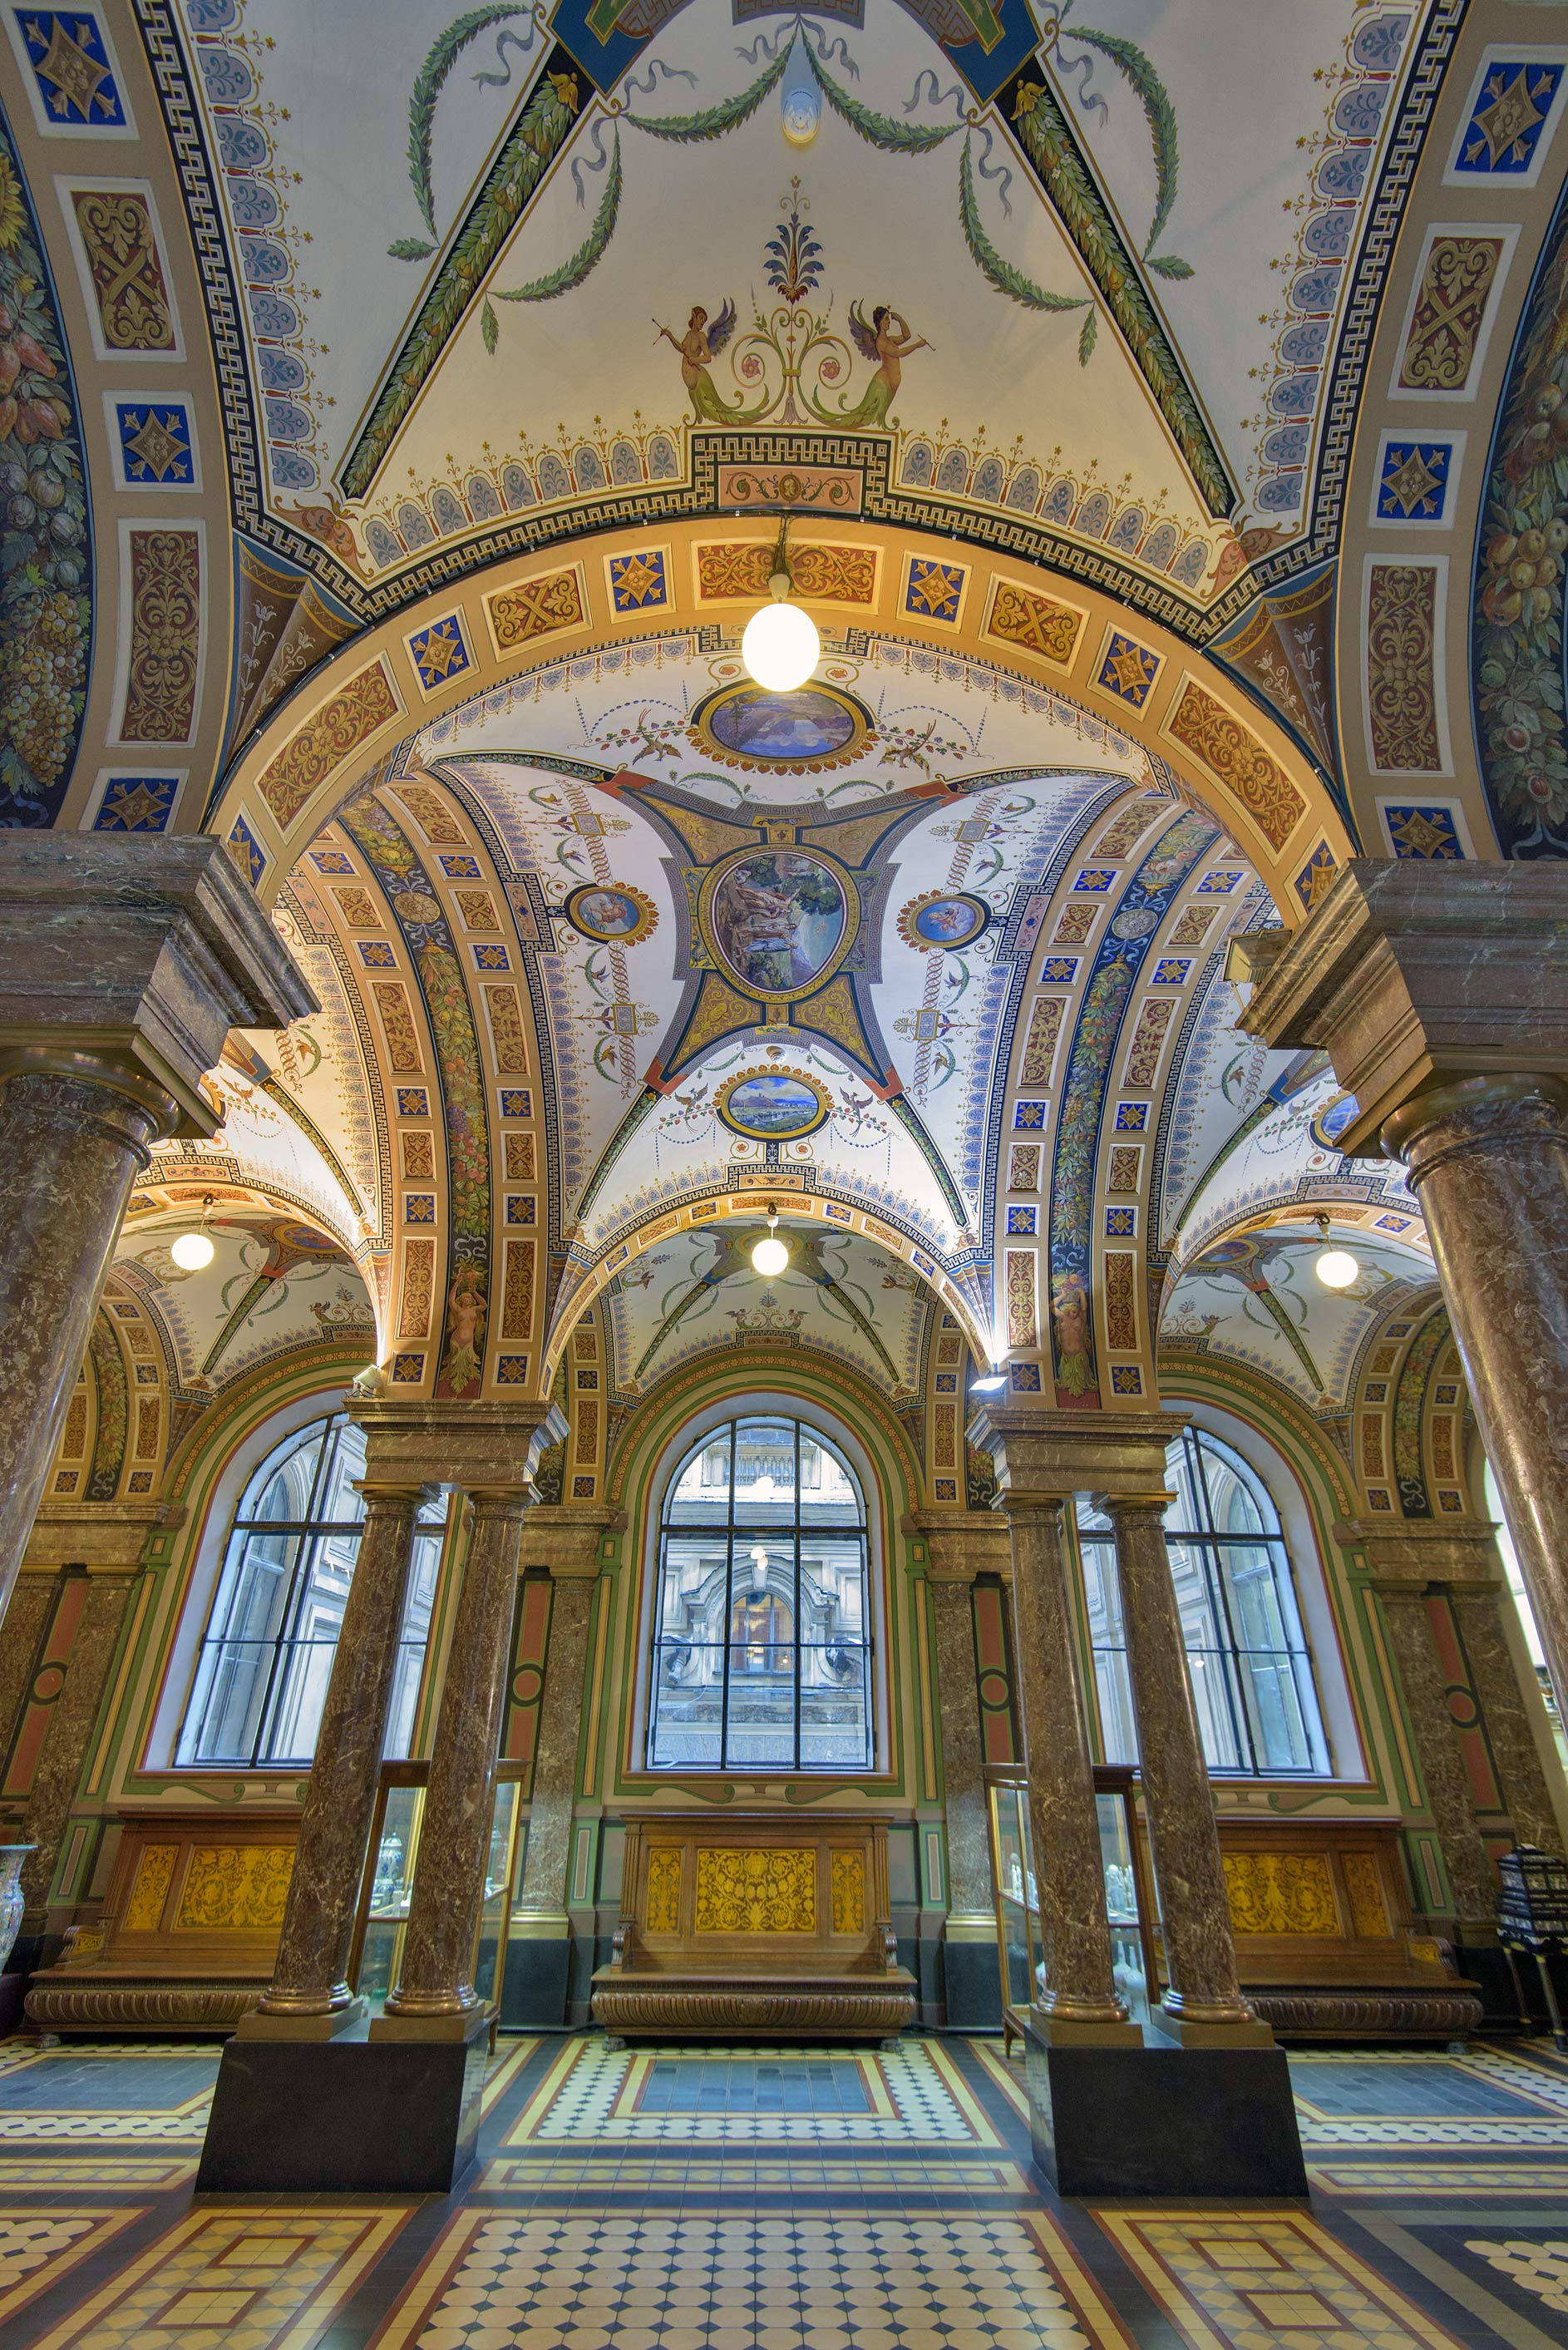 Vaults of Avant Hall in Stieglitz Museum of Applied Arts. St.Petersburg, Russia